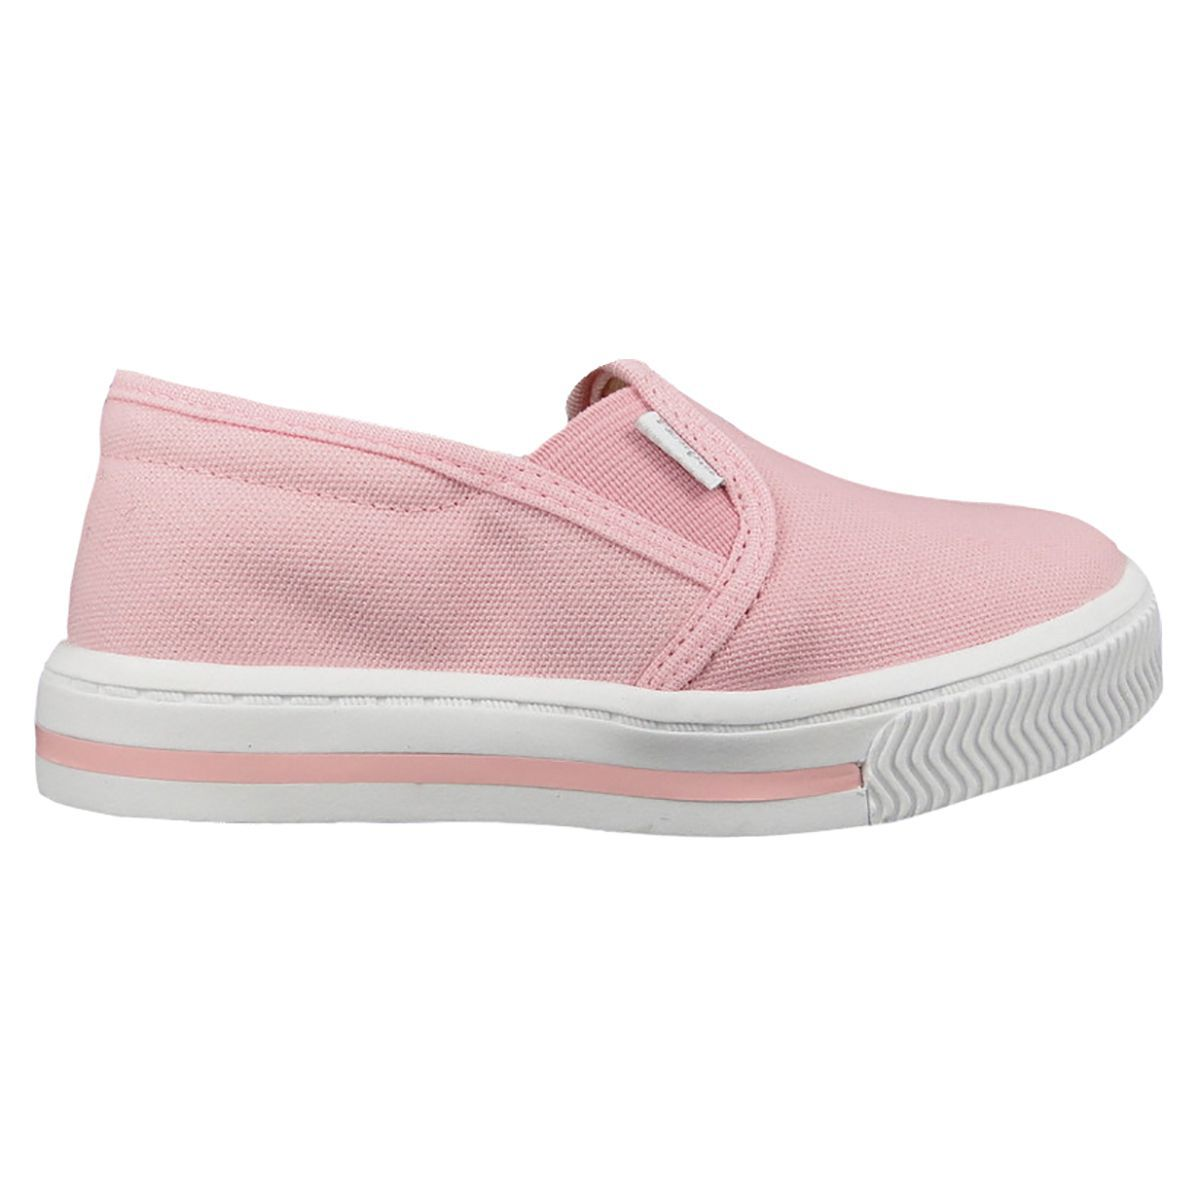 Tênis Pampili Feminino Blog Slip On